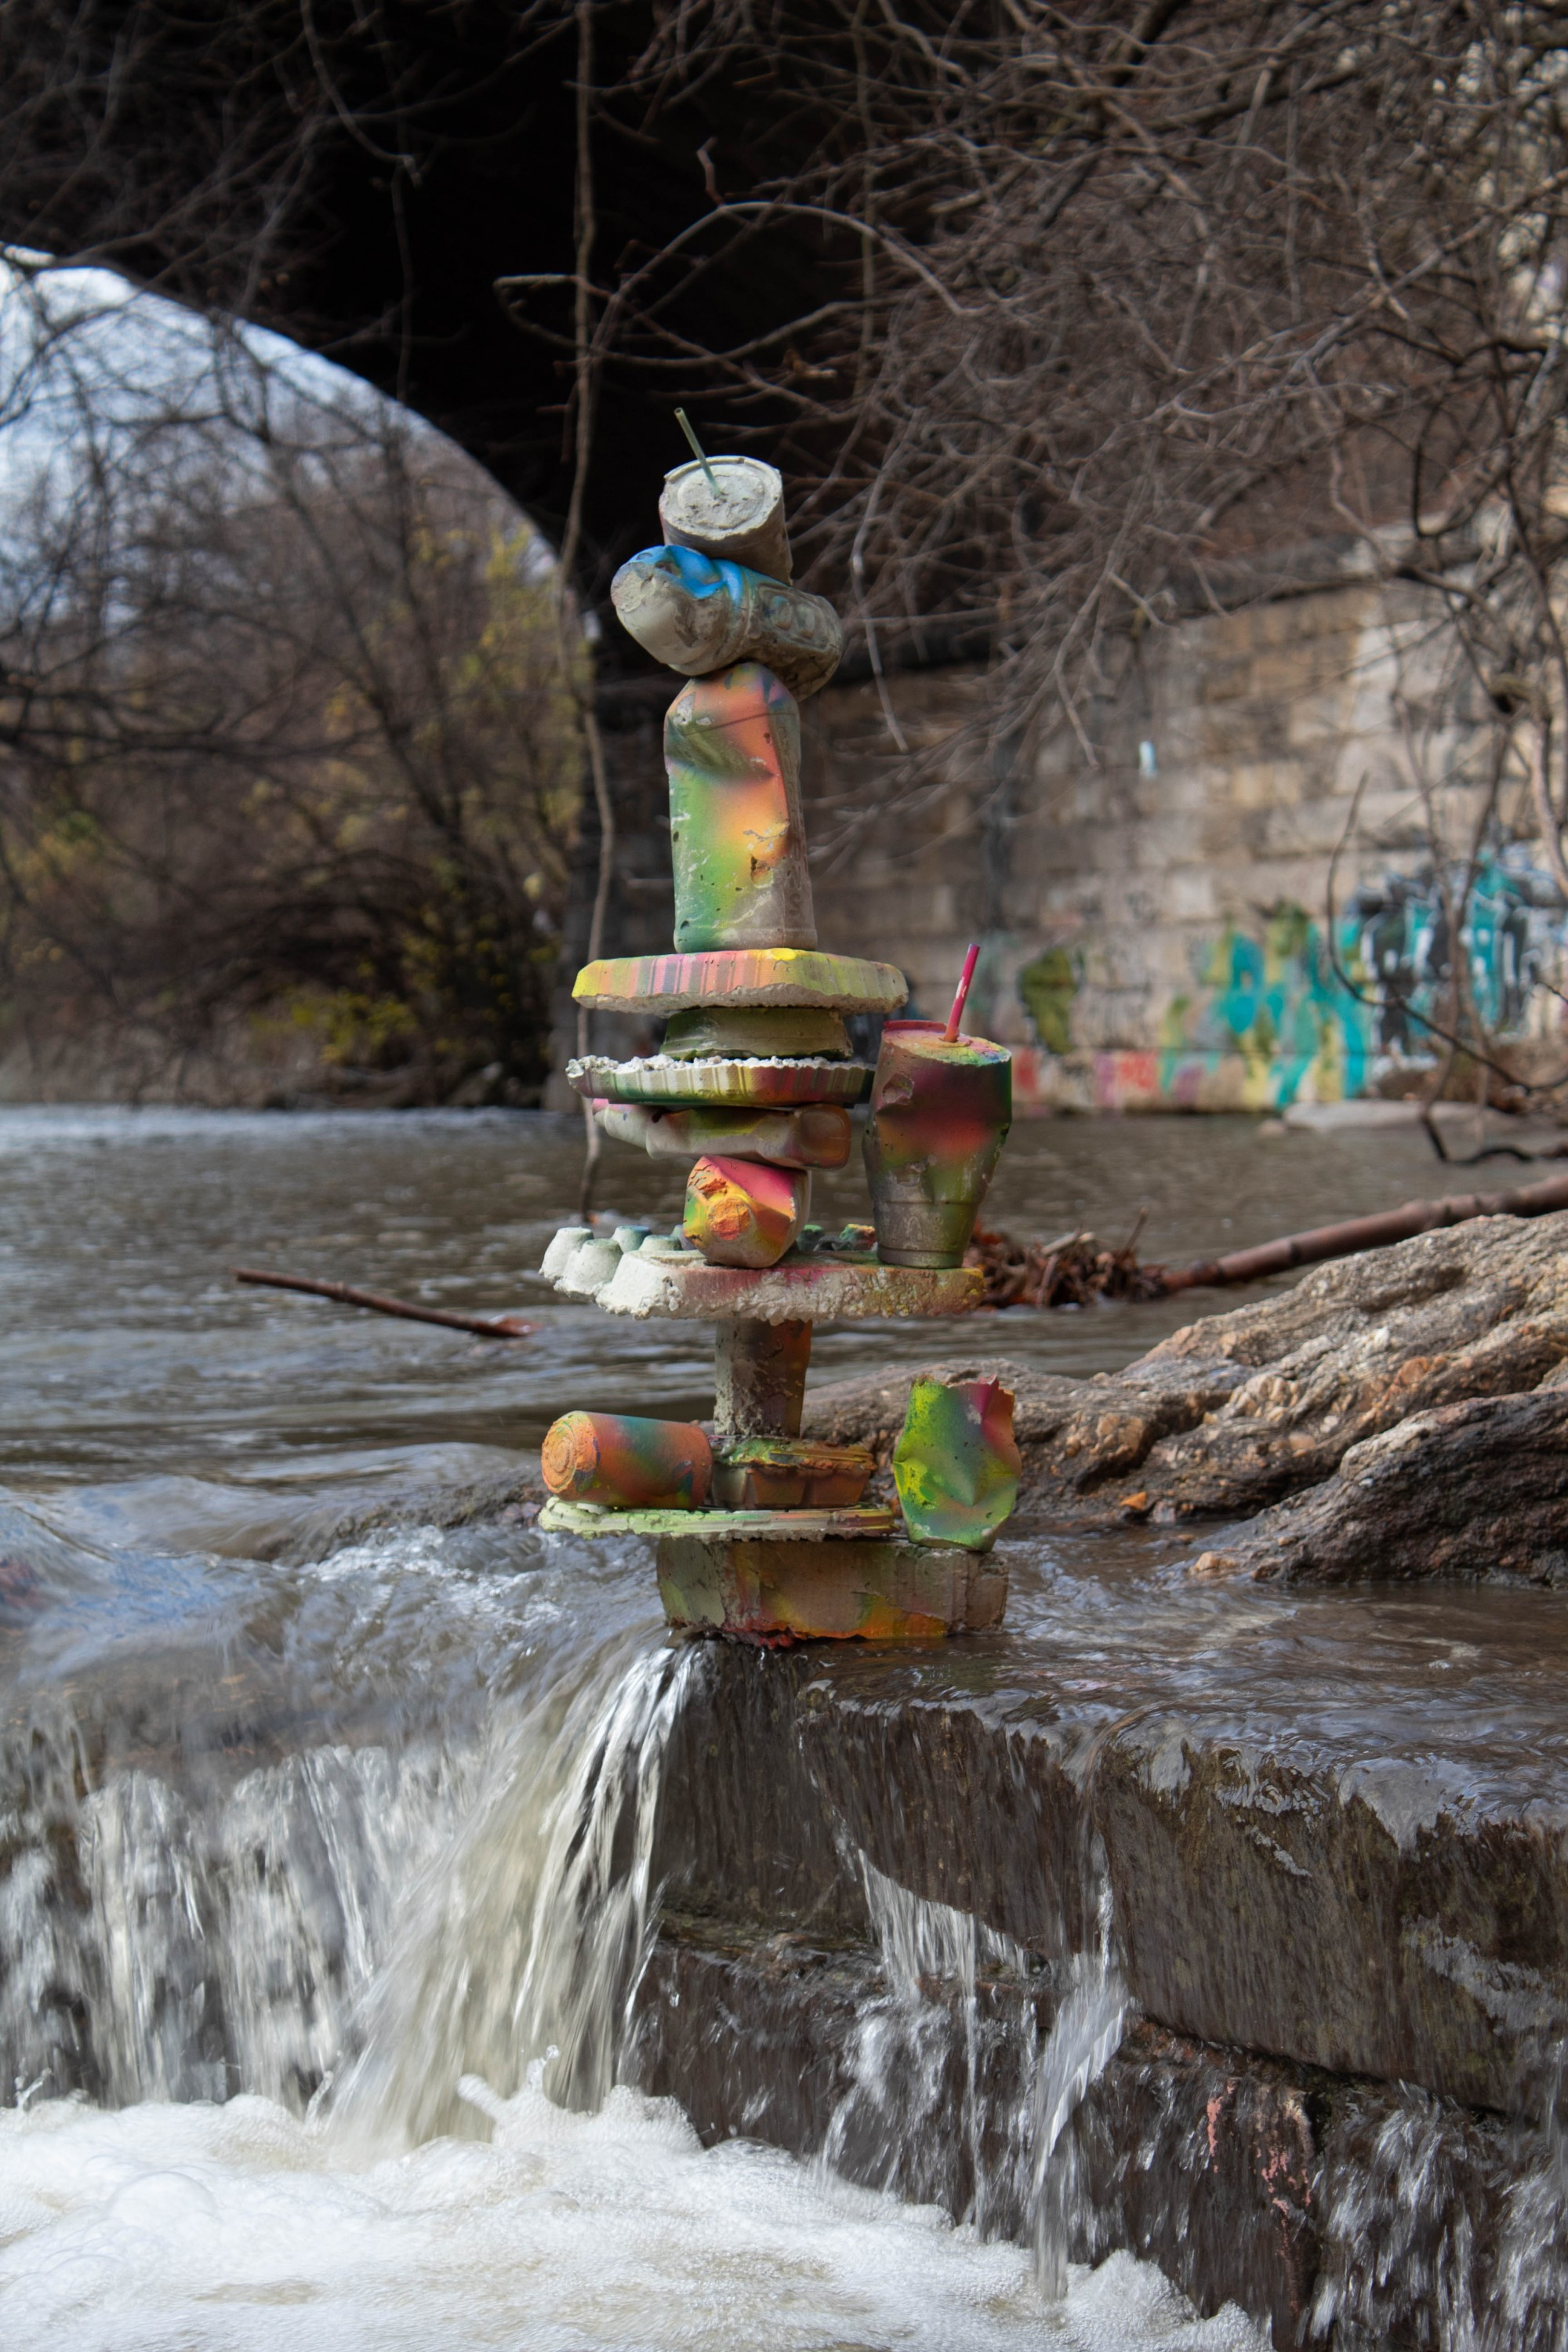 The first image of the three part series shows the consumer by-product concrete castings balanced as a graffitied rock cairn next to the Jones Falls stream.